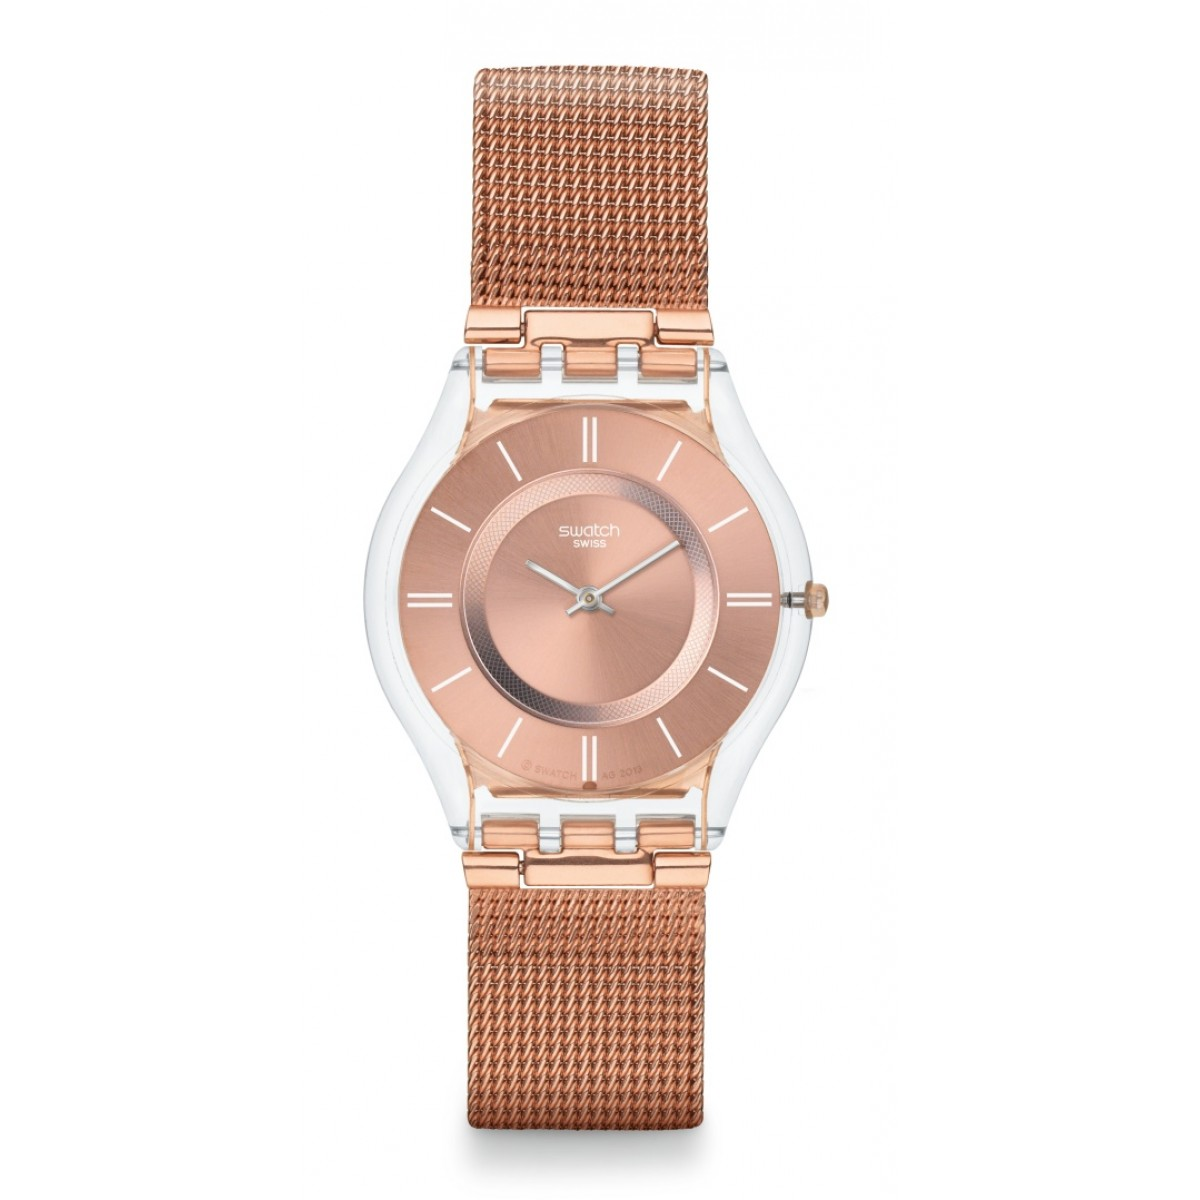 Genskie_chasy_Swatch (25)